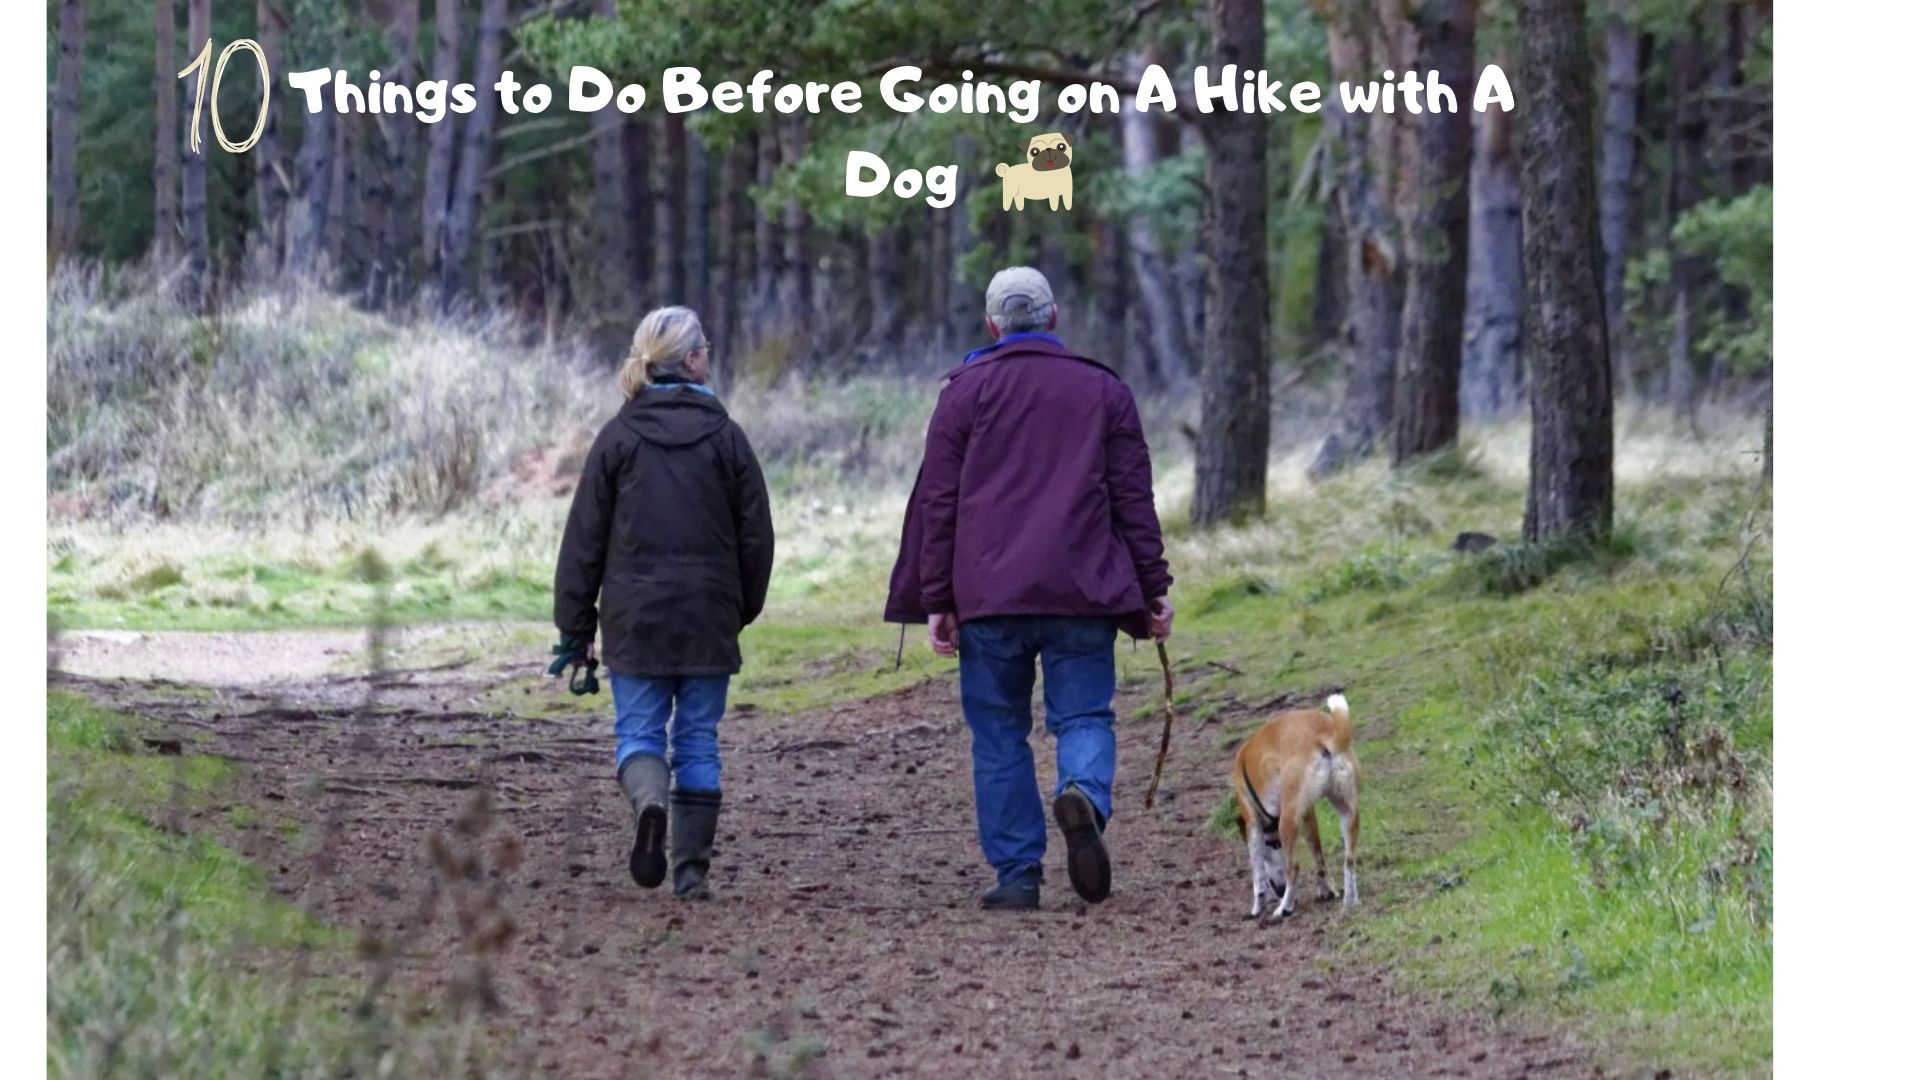 going on a hike with a dog